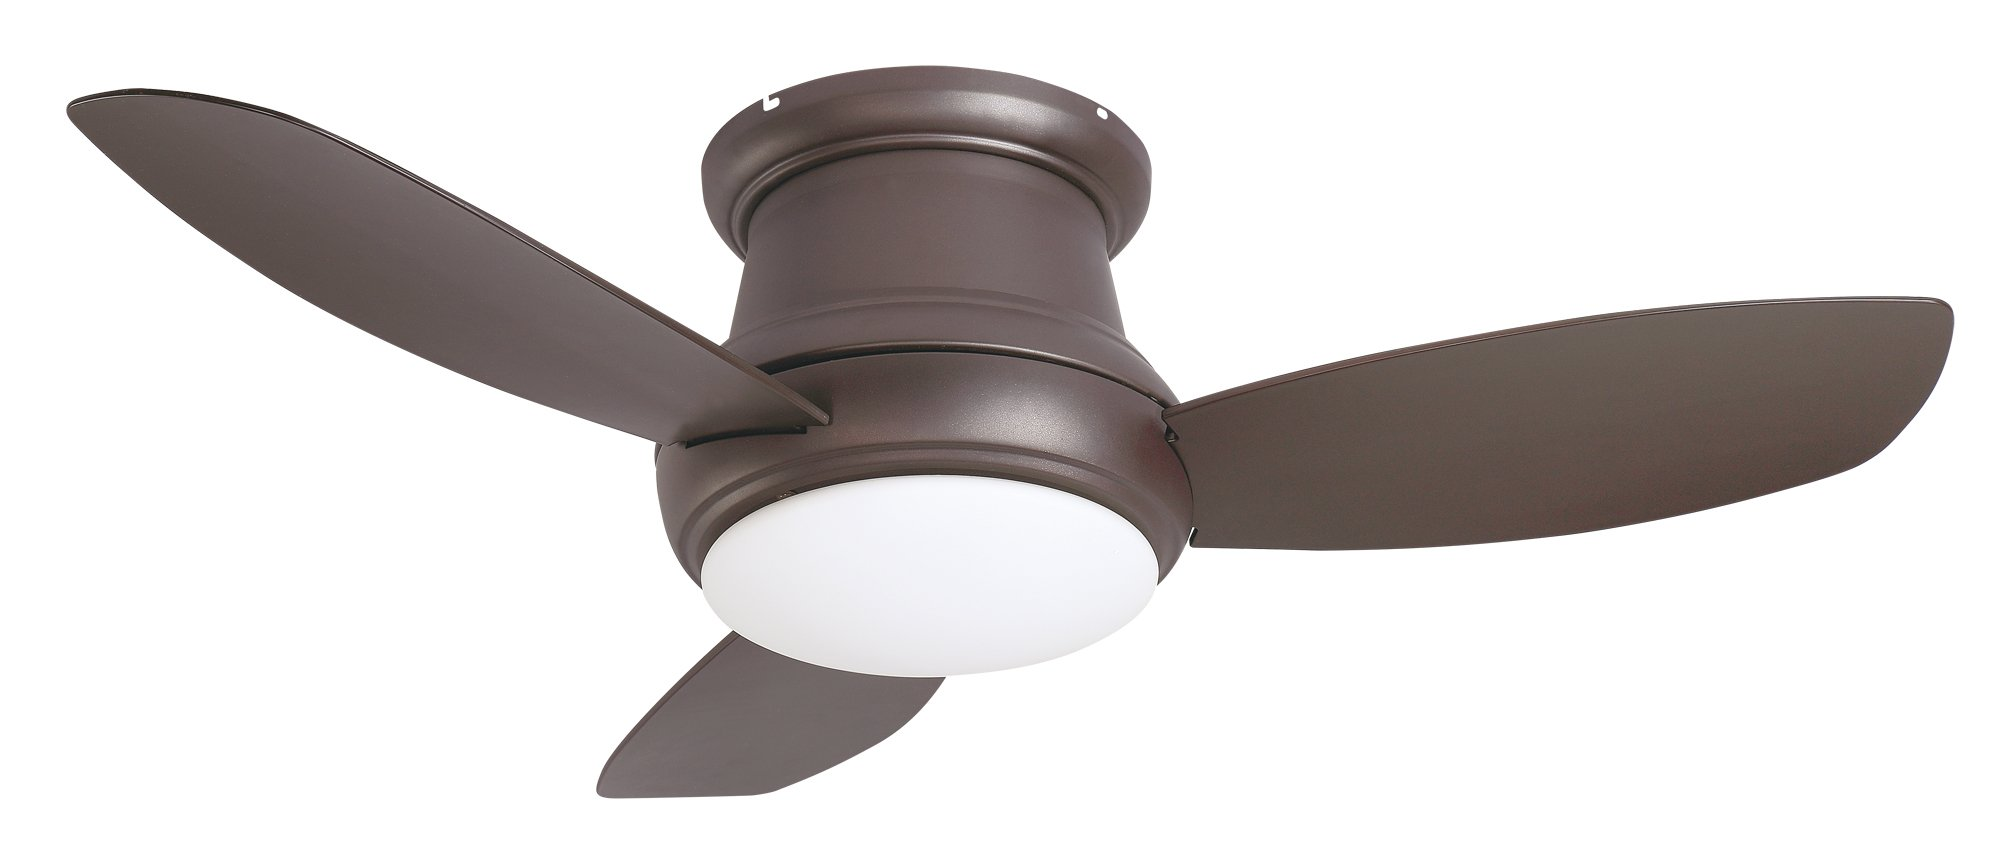 Cloudy Bay Oil Rubbed Bronze Flush Mount 44'' Ceiling Fan with LED Light & Remote Control by Cloudy Bay